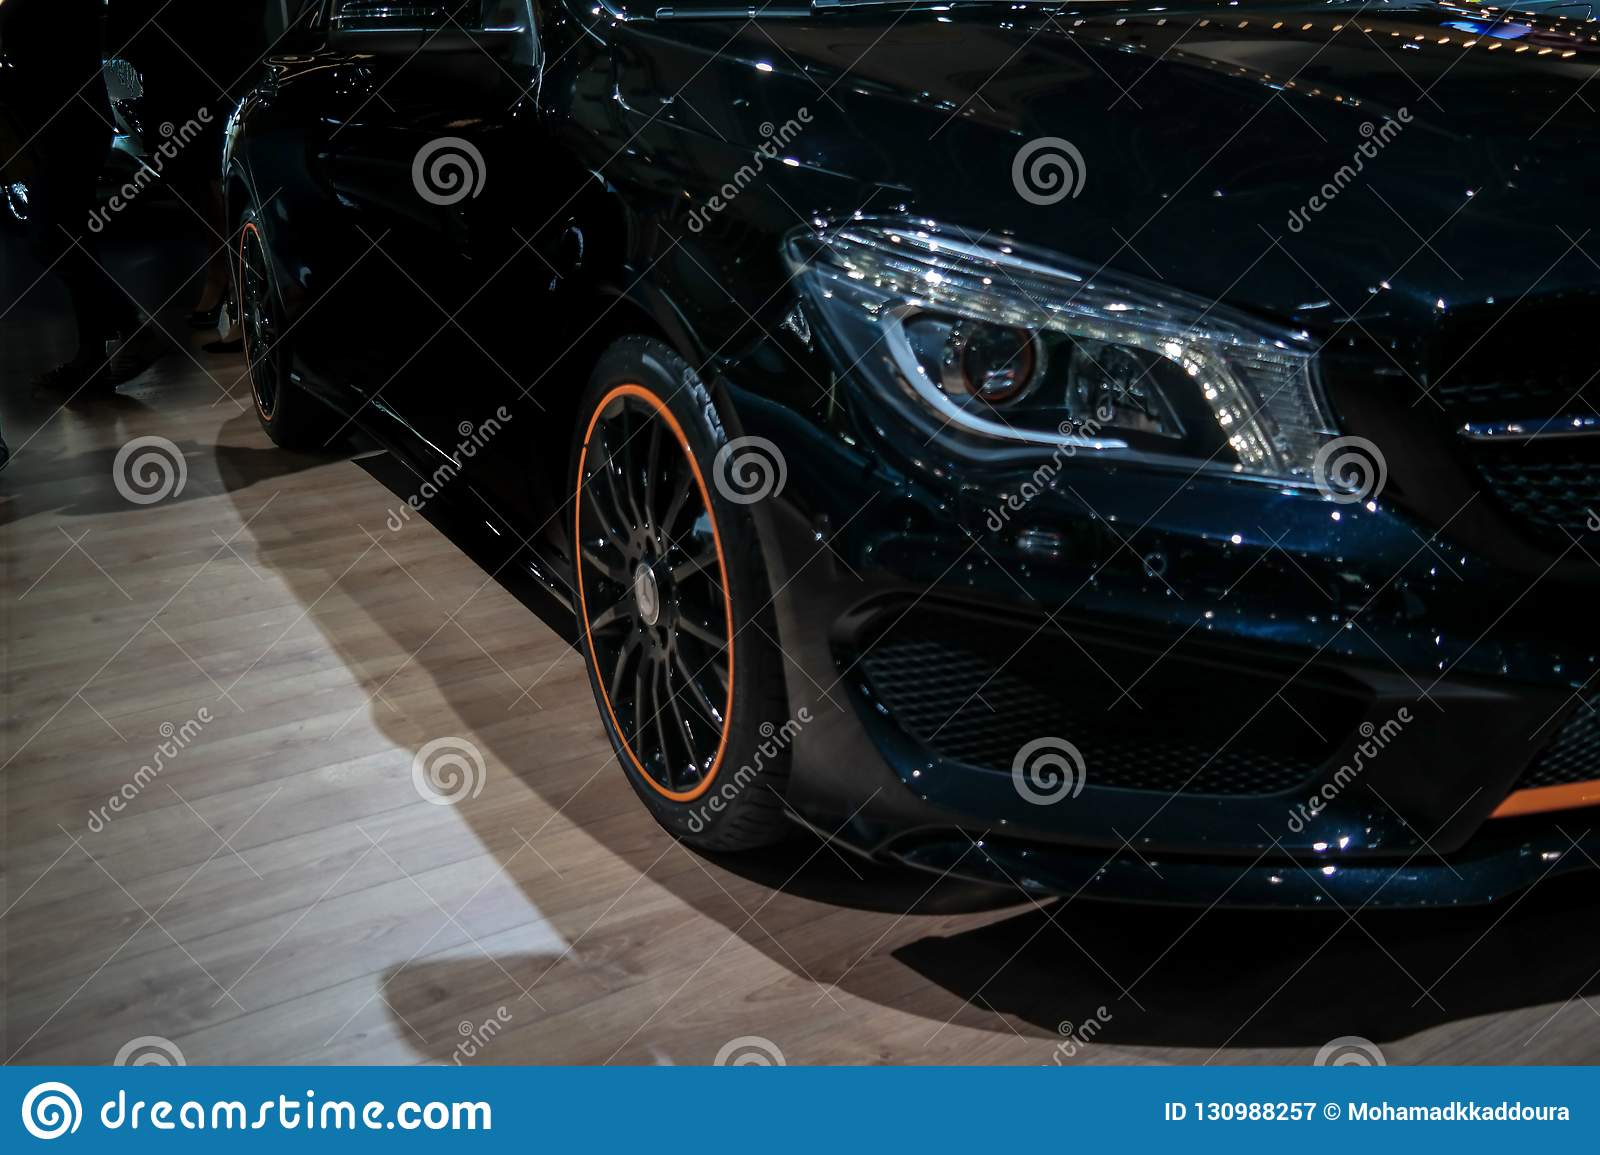 Motor Show Mercedes Benz Corner Displaying Their Epic New Cars S Class Amg Editorial Photography Image Of Model Design 130988257